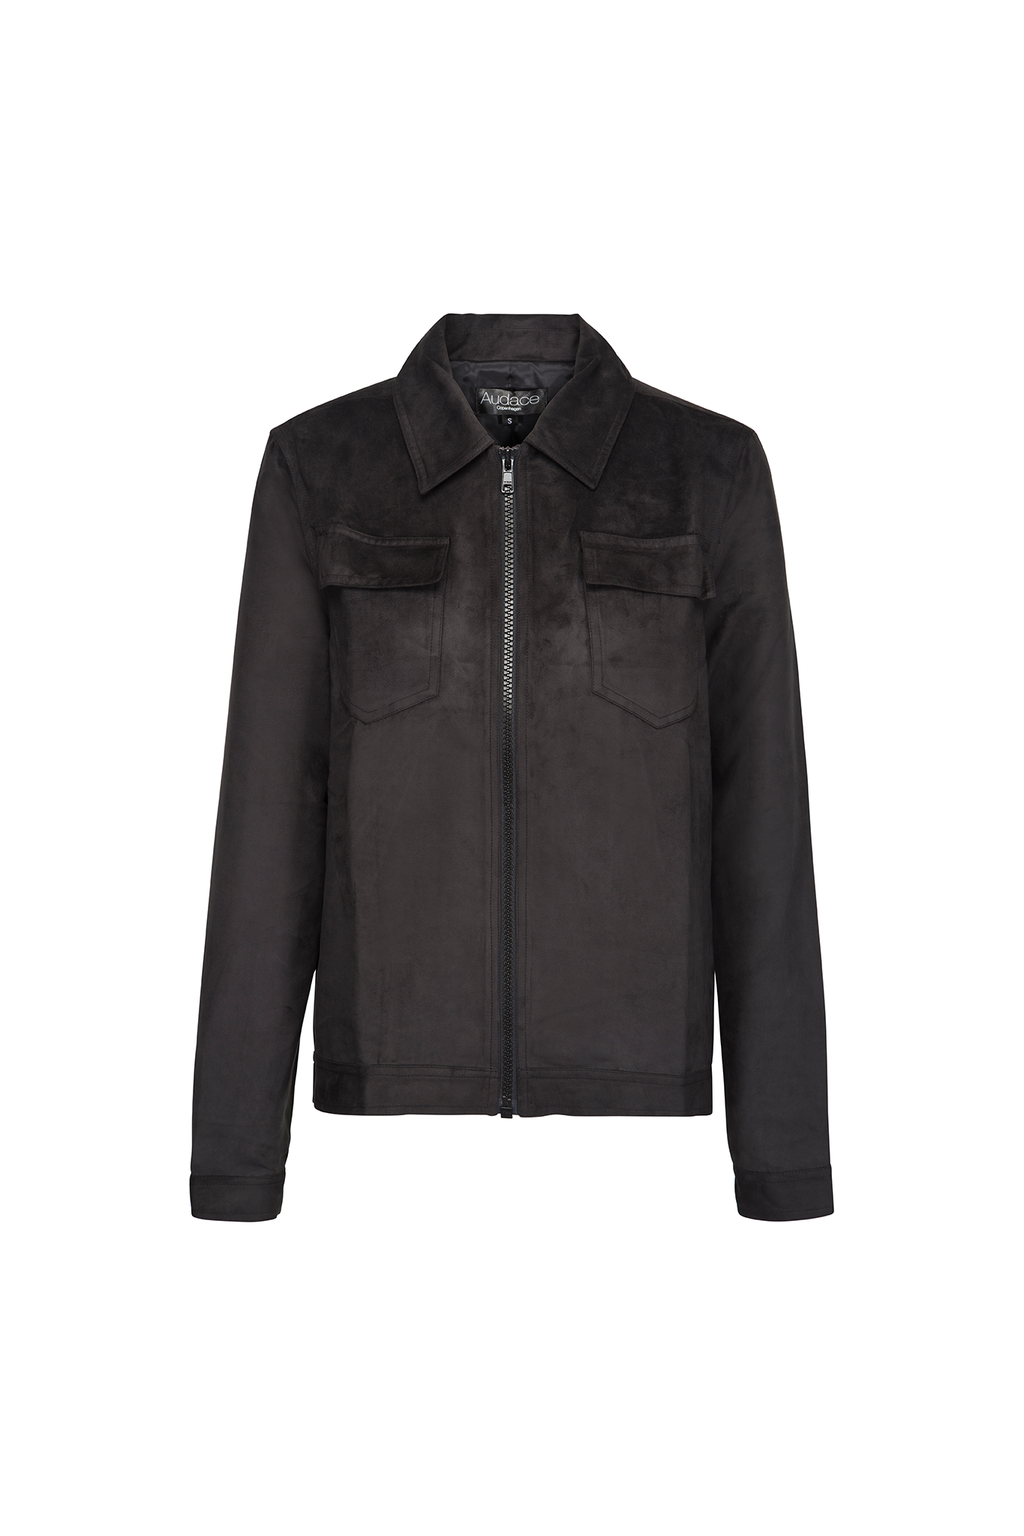 San Francisco Jacket - Black - Audace Copenhagen